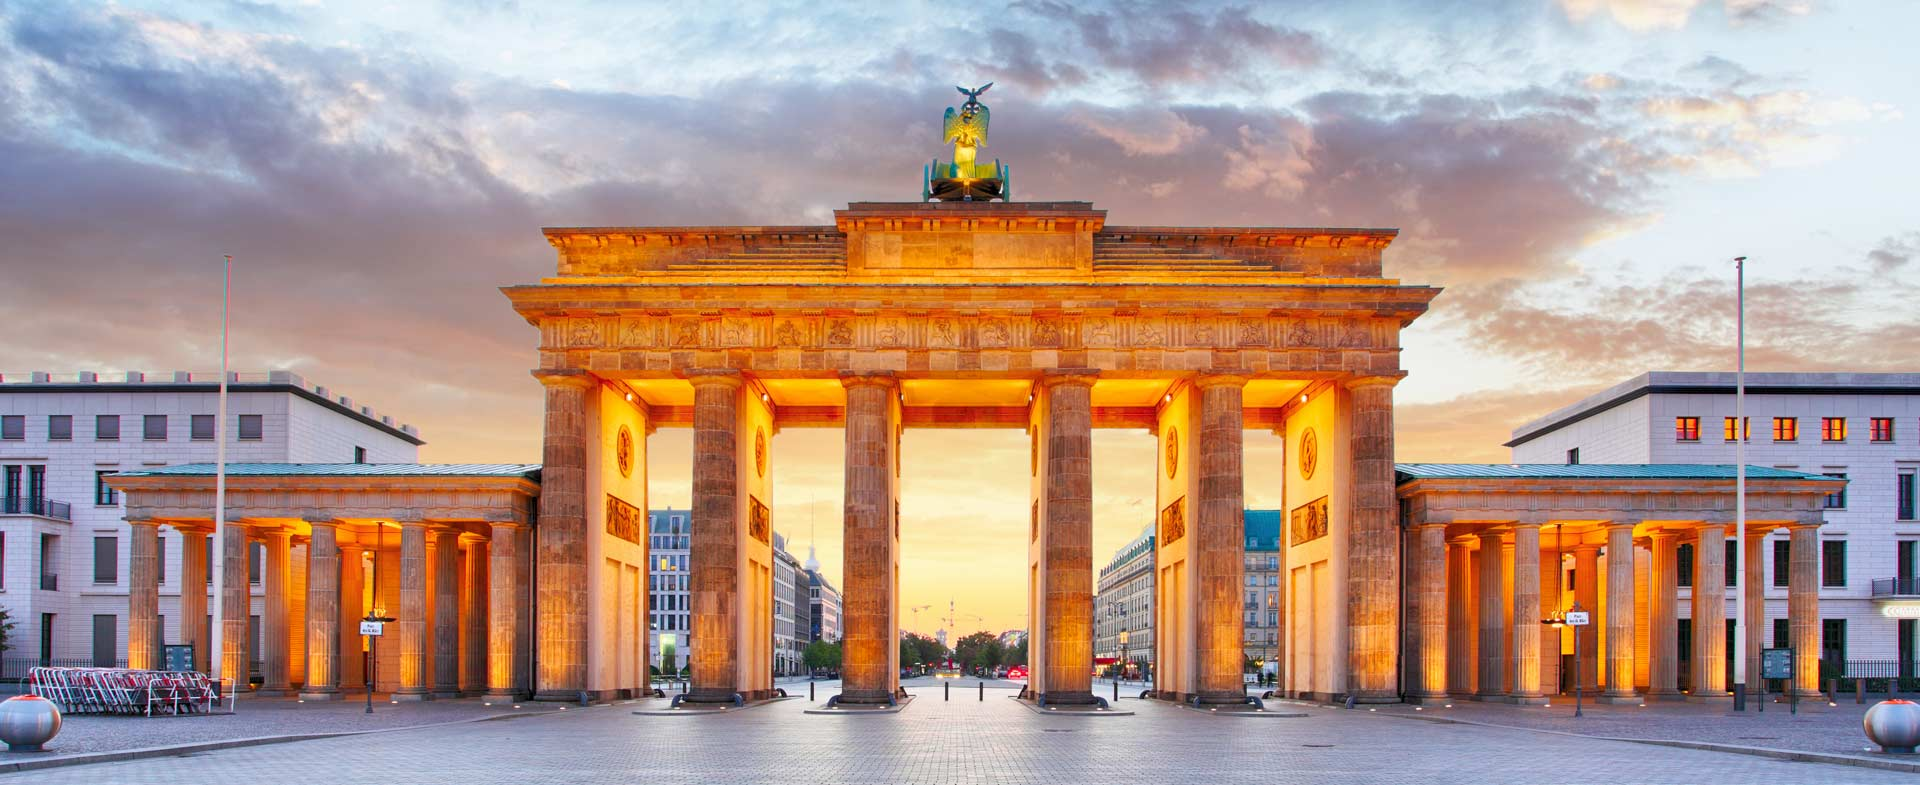 Only 3 days left to save 30 percent on Disrupt Berlin tickets